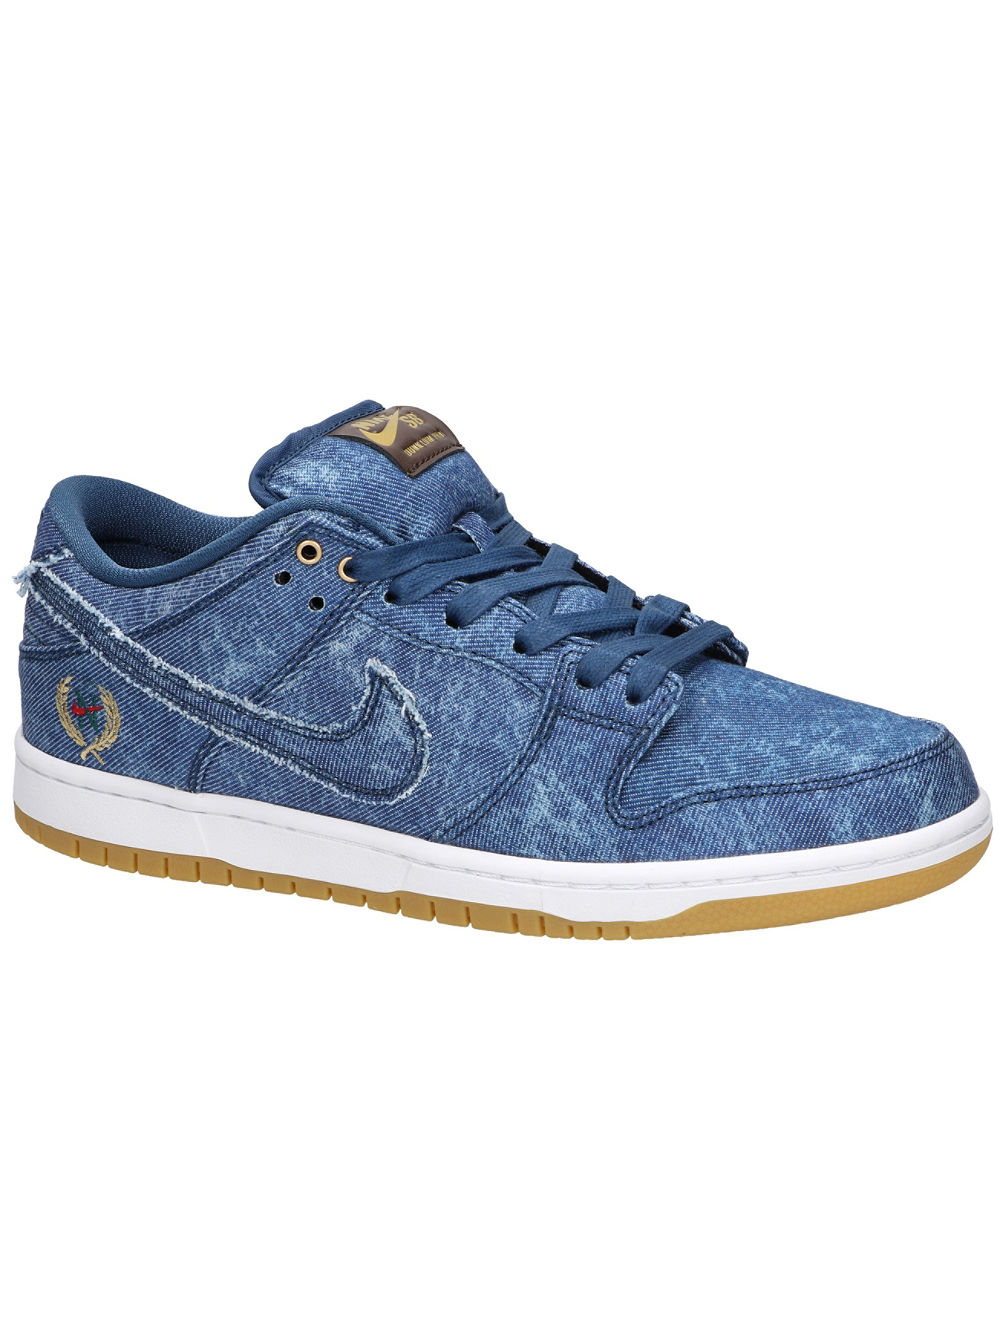 SB Dunk Low Skate Shoes